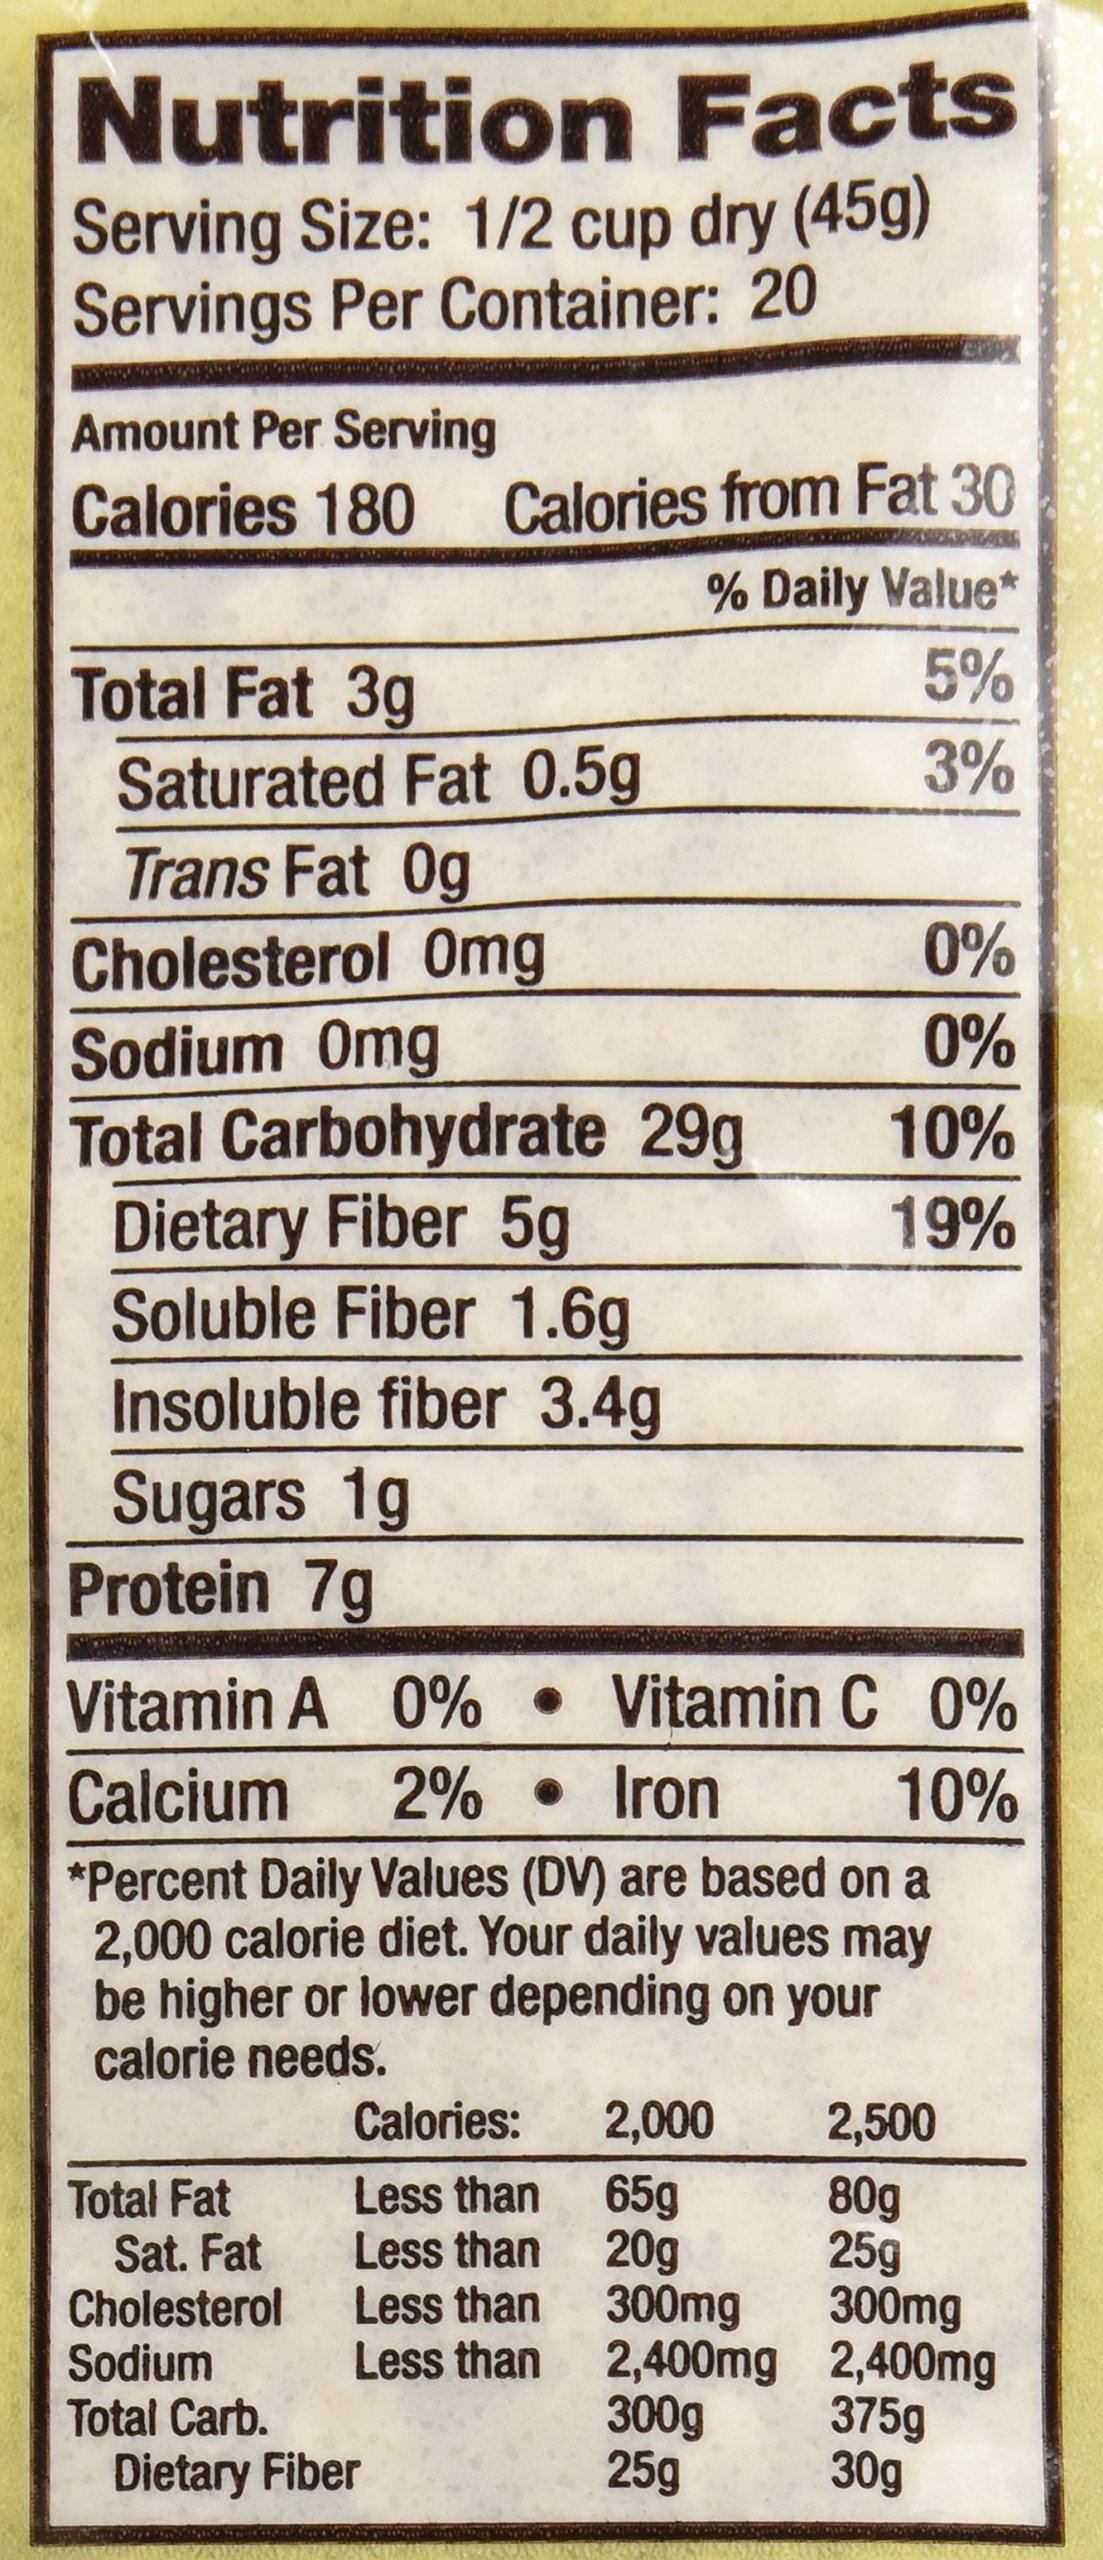 Bobs Red Mill Gluten Free Quick Cooking Oats, 2.13 Pound by Bob's Red Mill (Image #2)